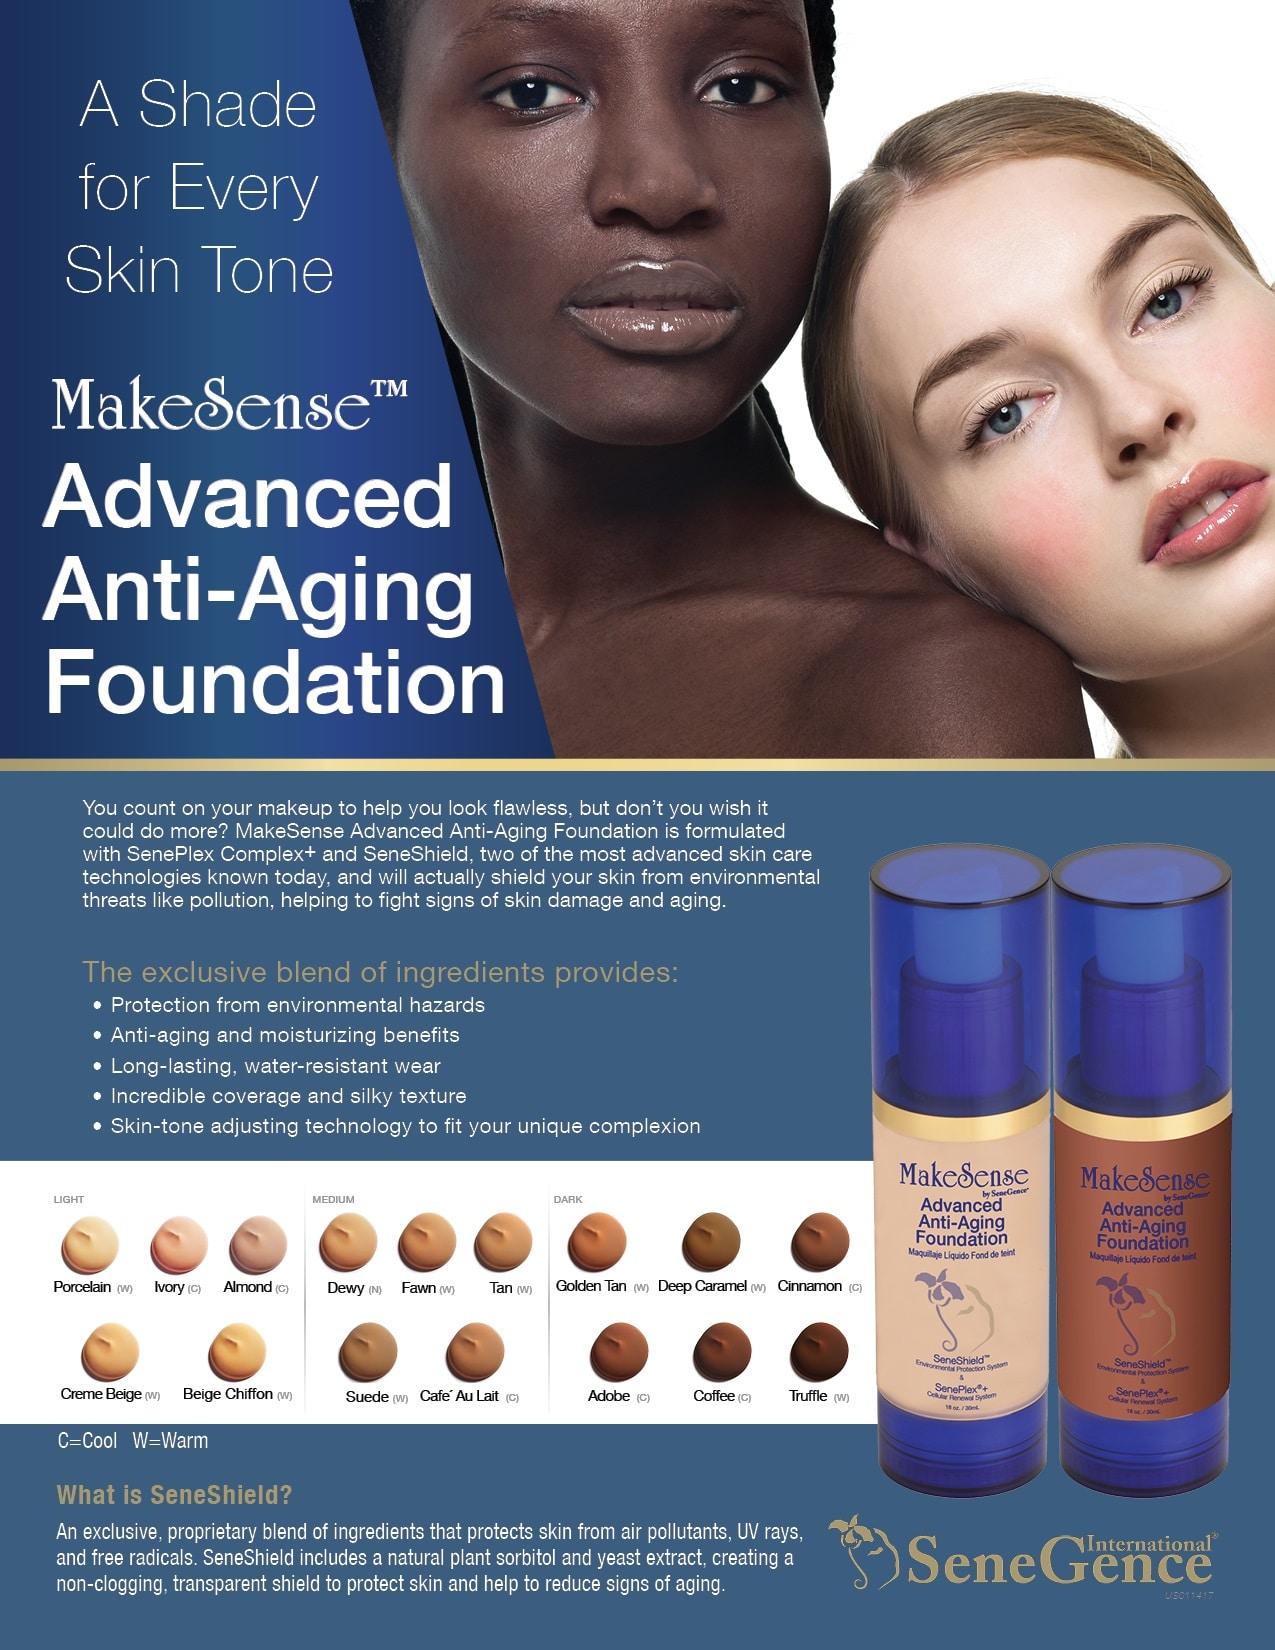 Senegence AntiAging Foundation